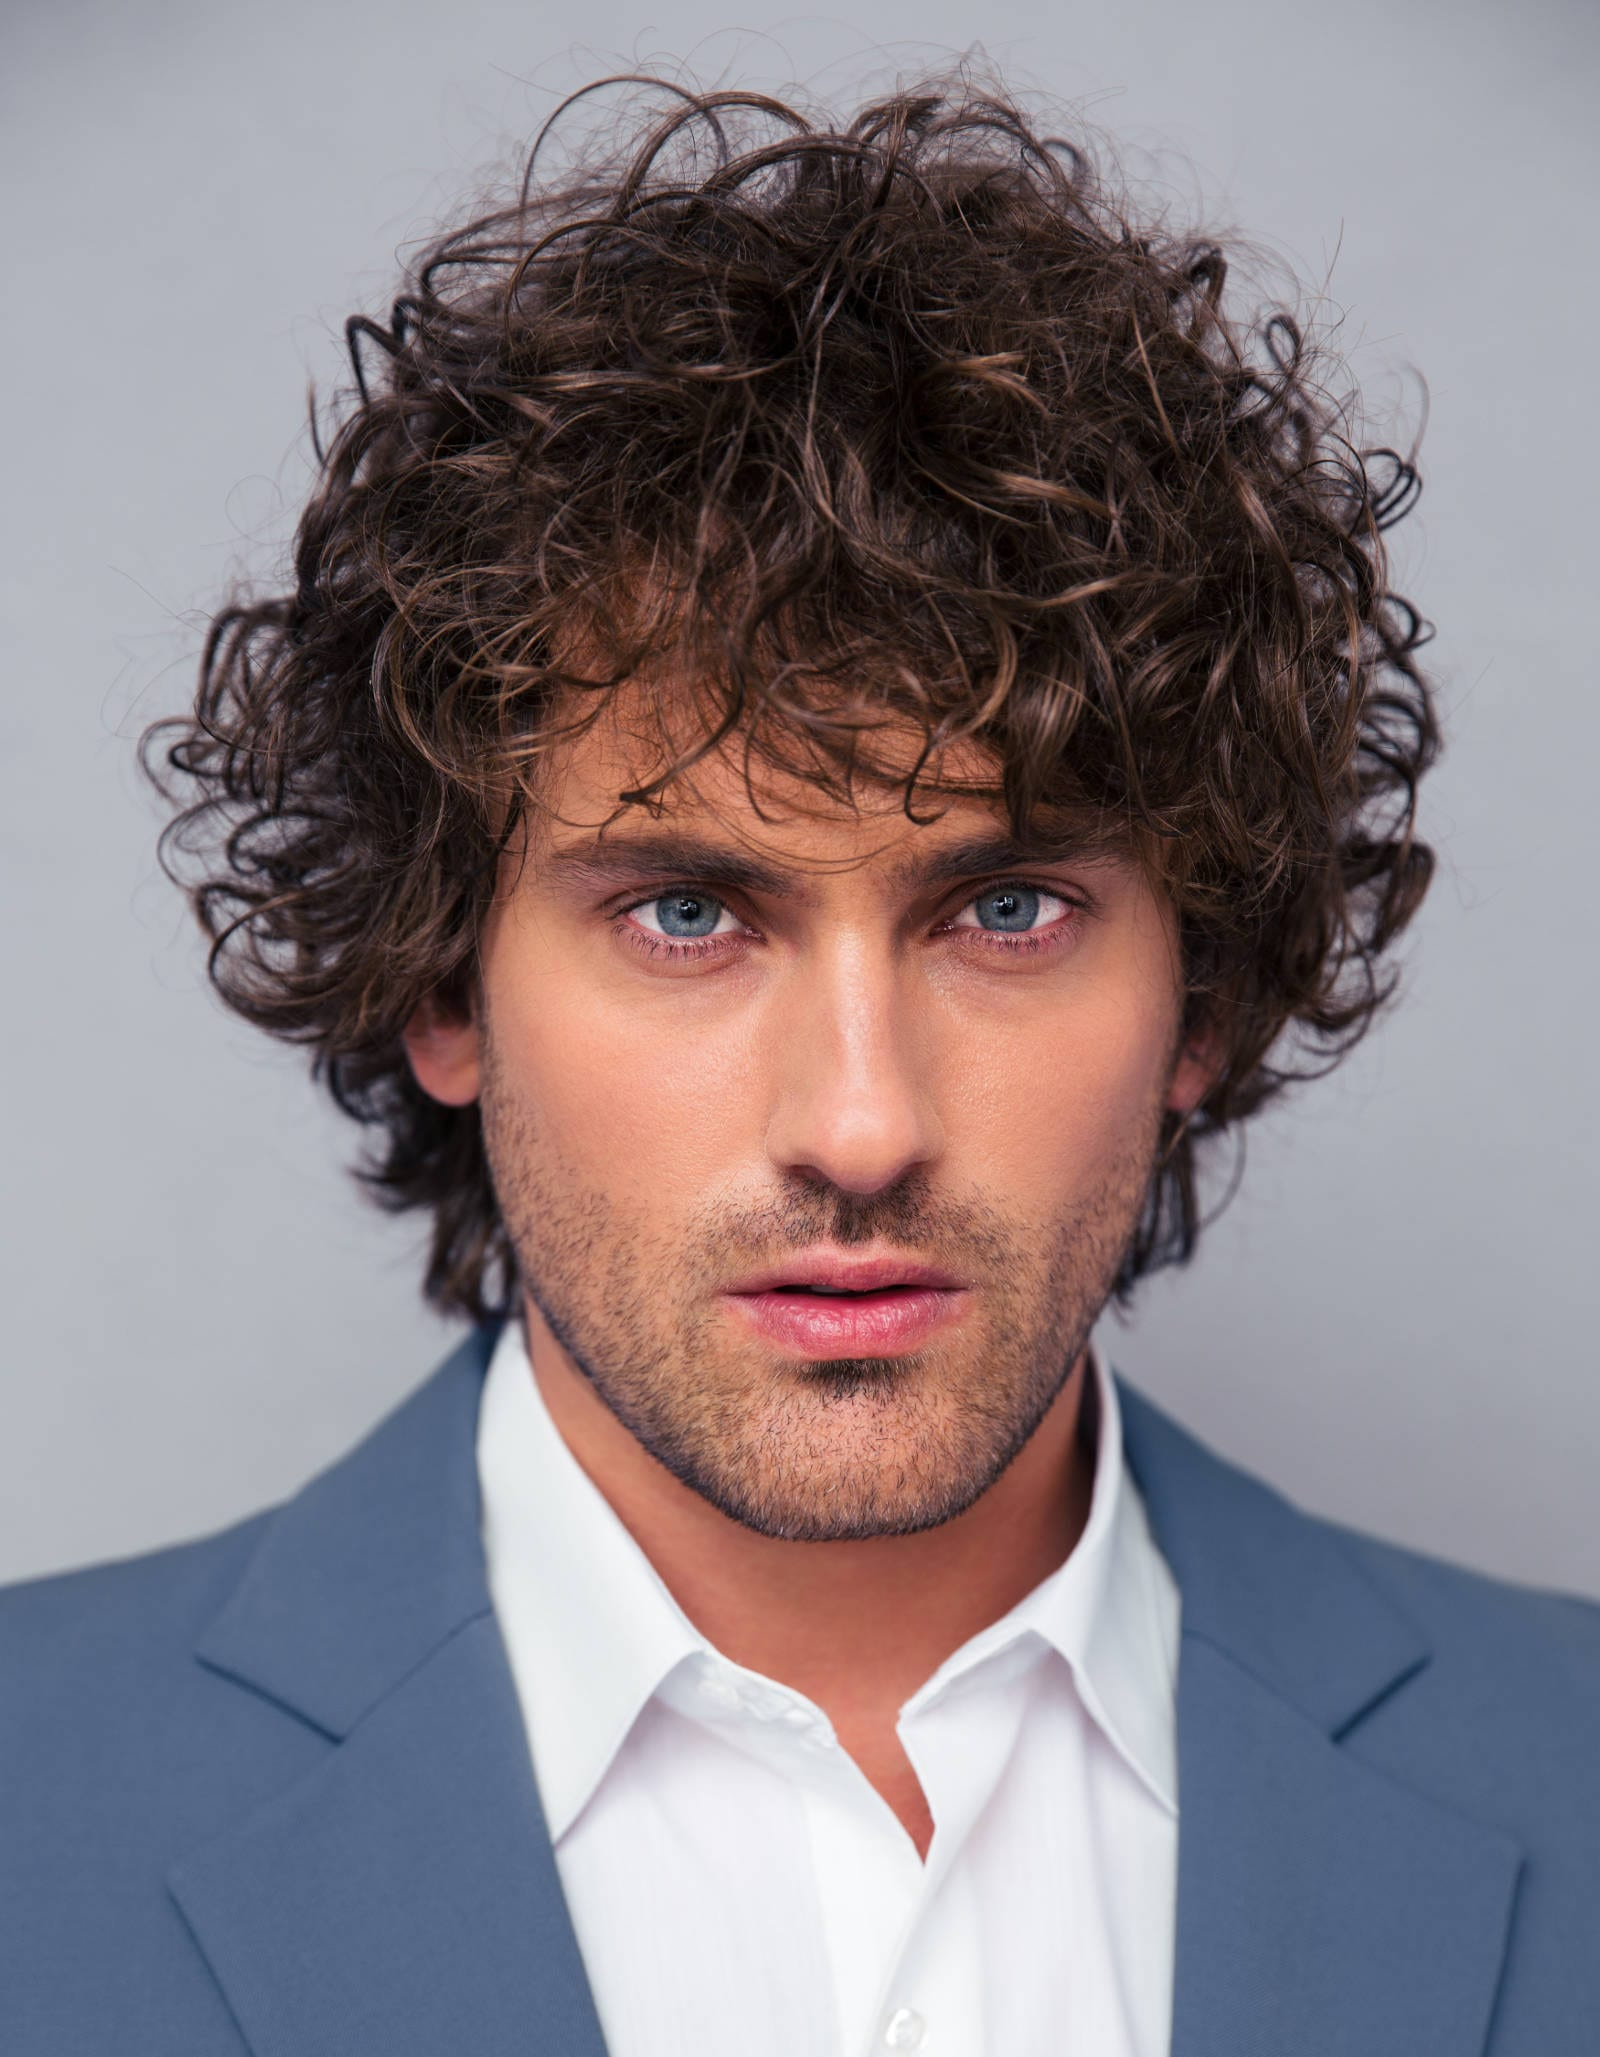 Classic-Curly-Hairstyle Mens Hairstyles with Thin Hair for Ultra Stylish Look